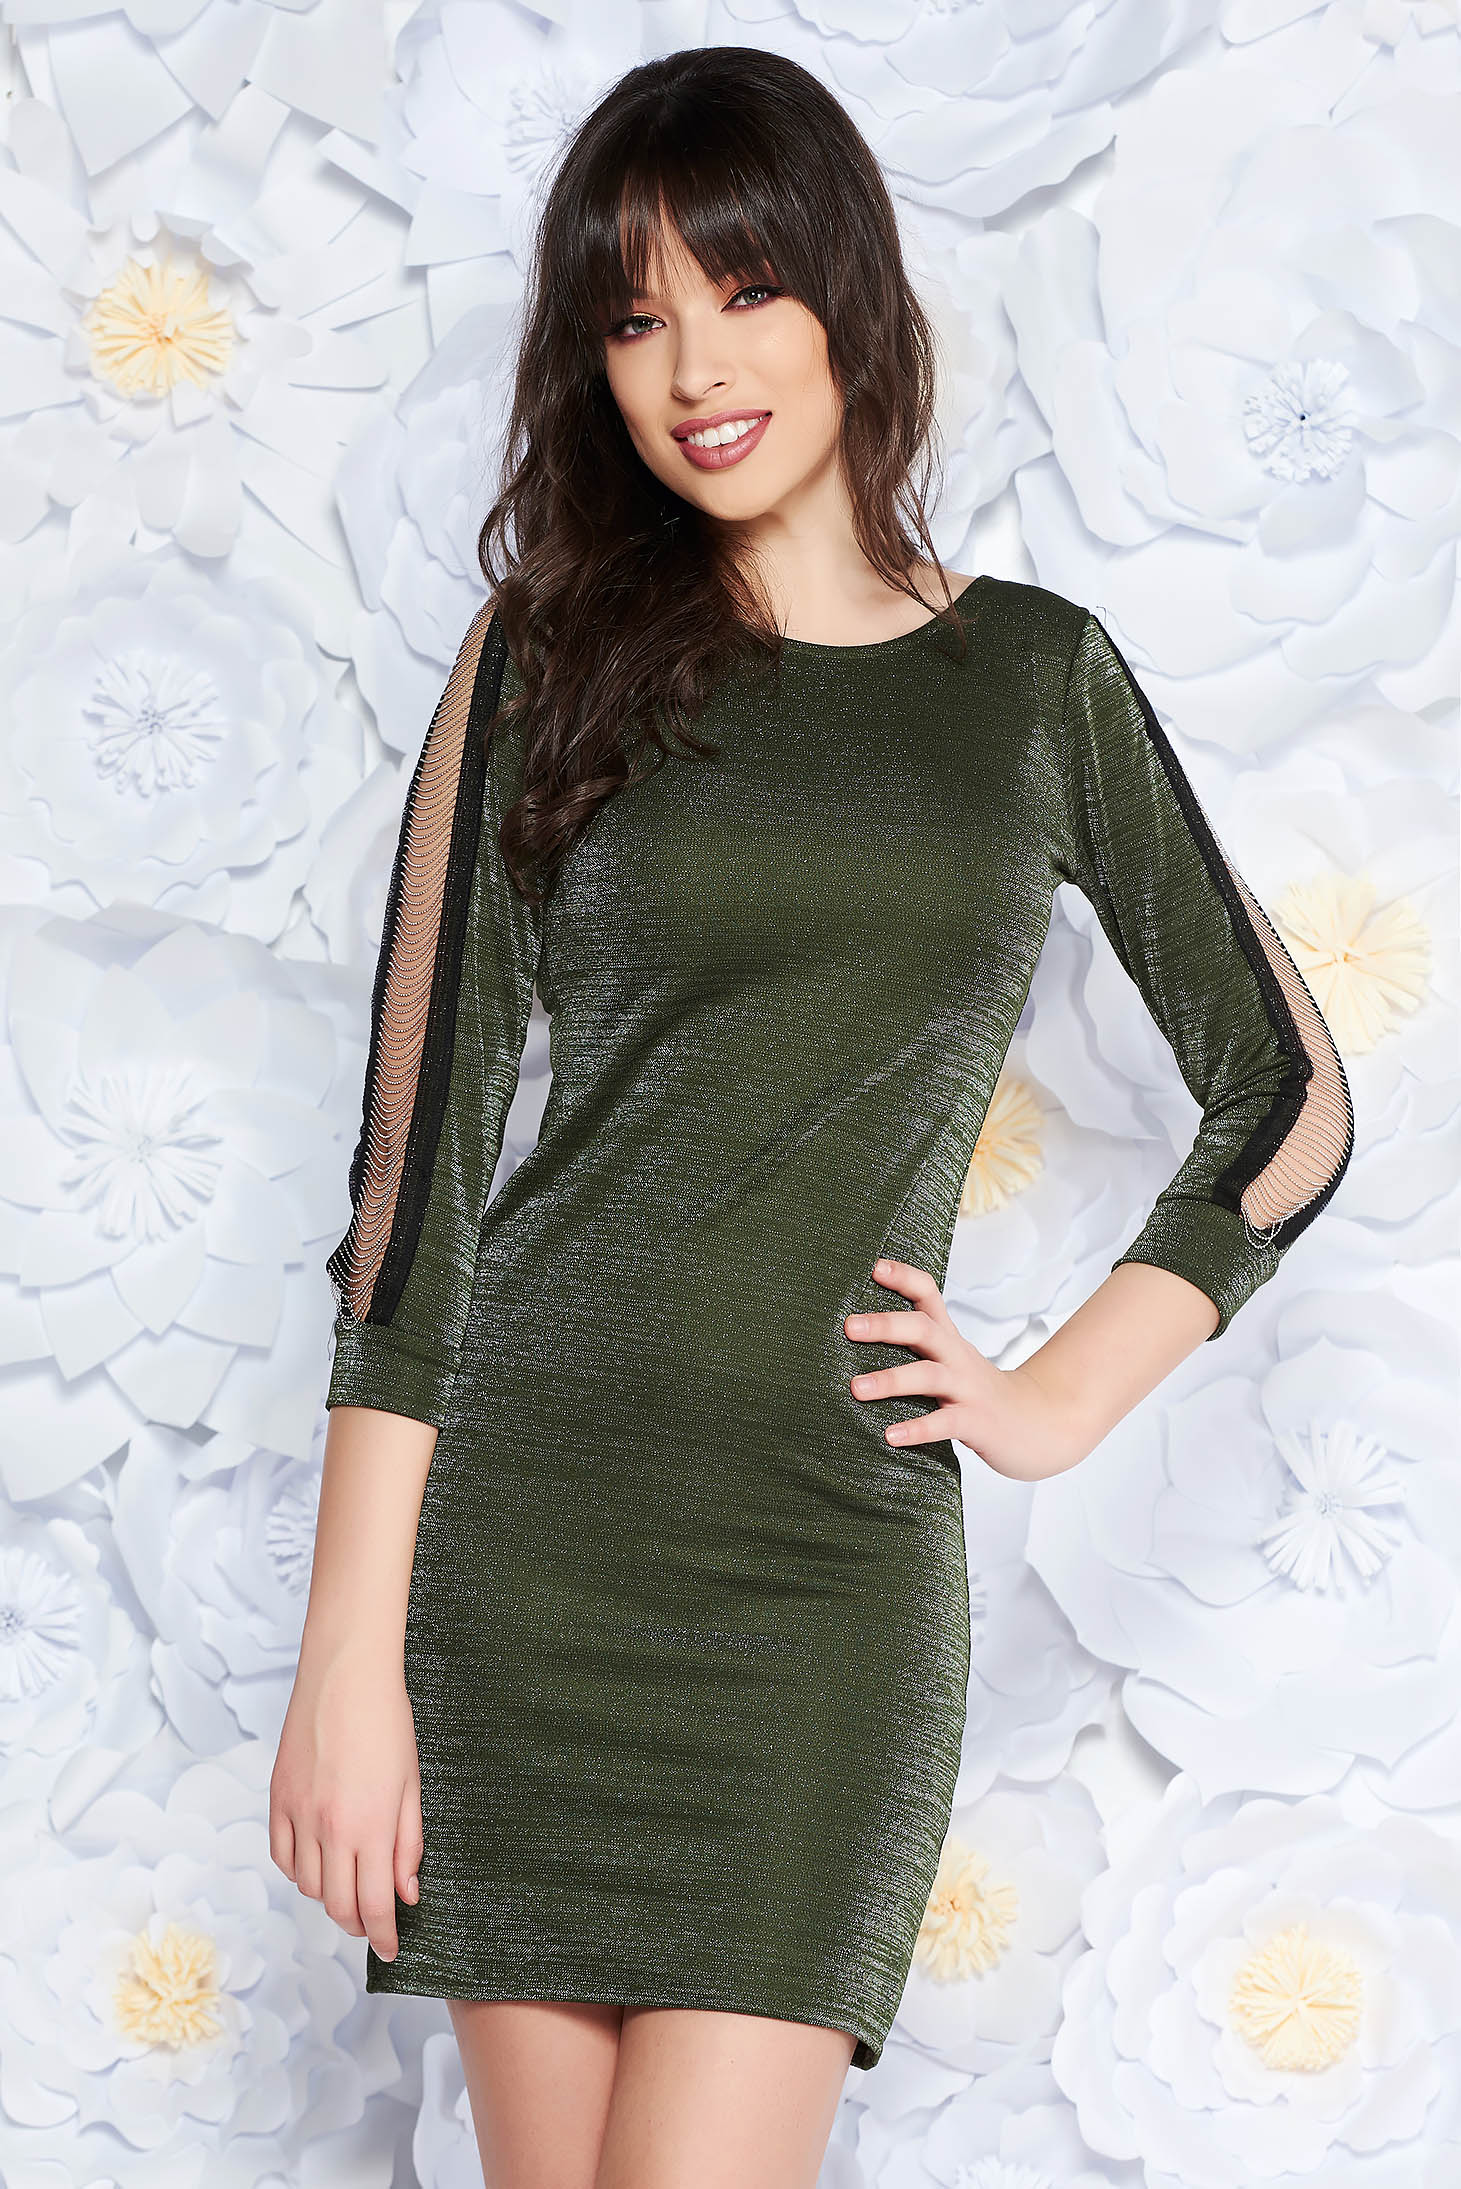 SunShine darkgreen clubbing dress from elastic fabric with tented cut with cut-out sleeves